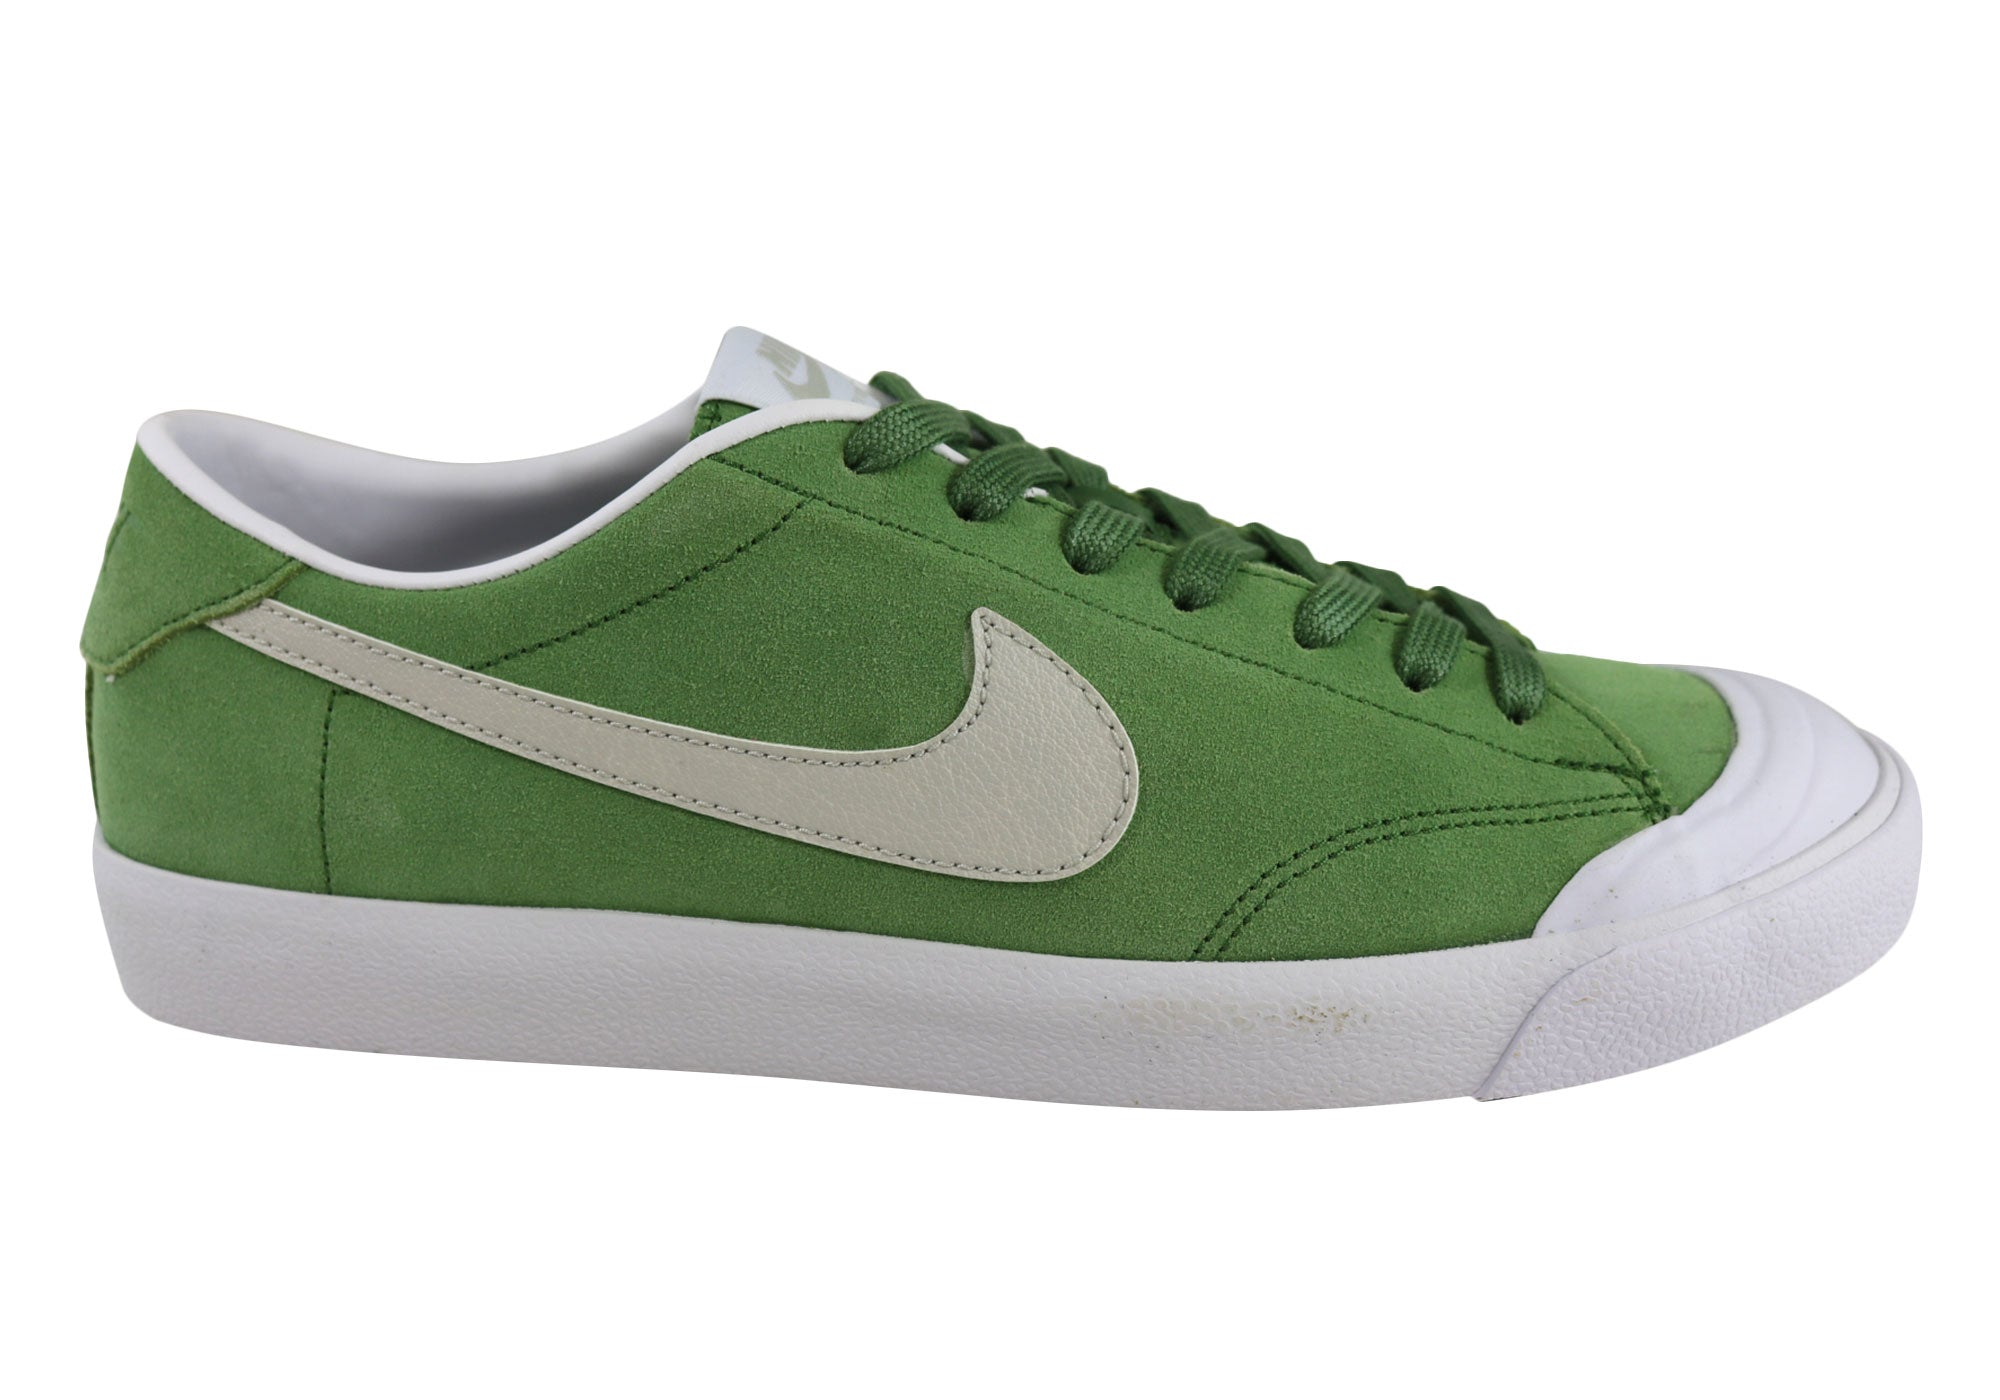 Nike SB Skate Board Mens Zoom All Court Ck Casual Suede